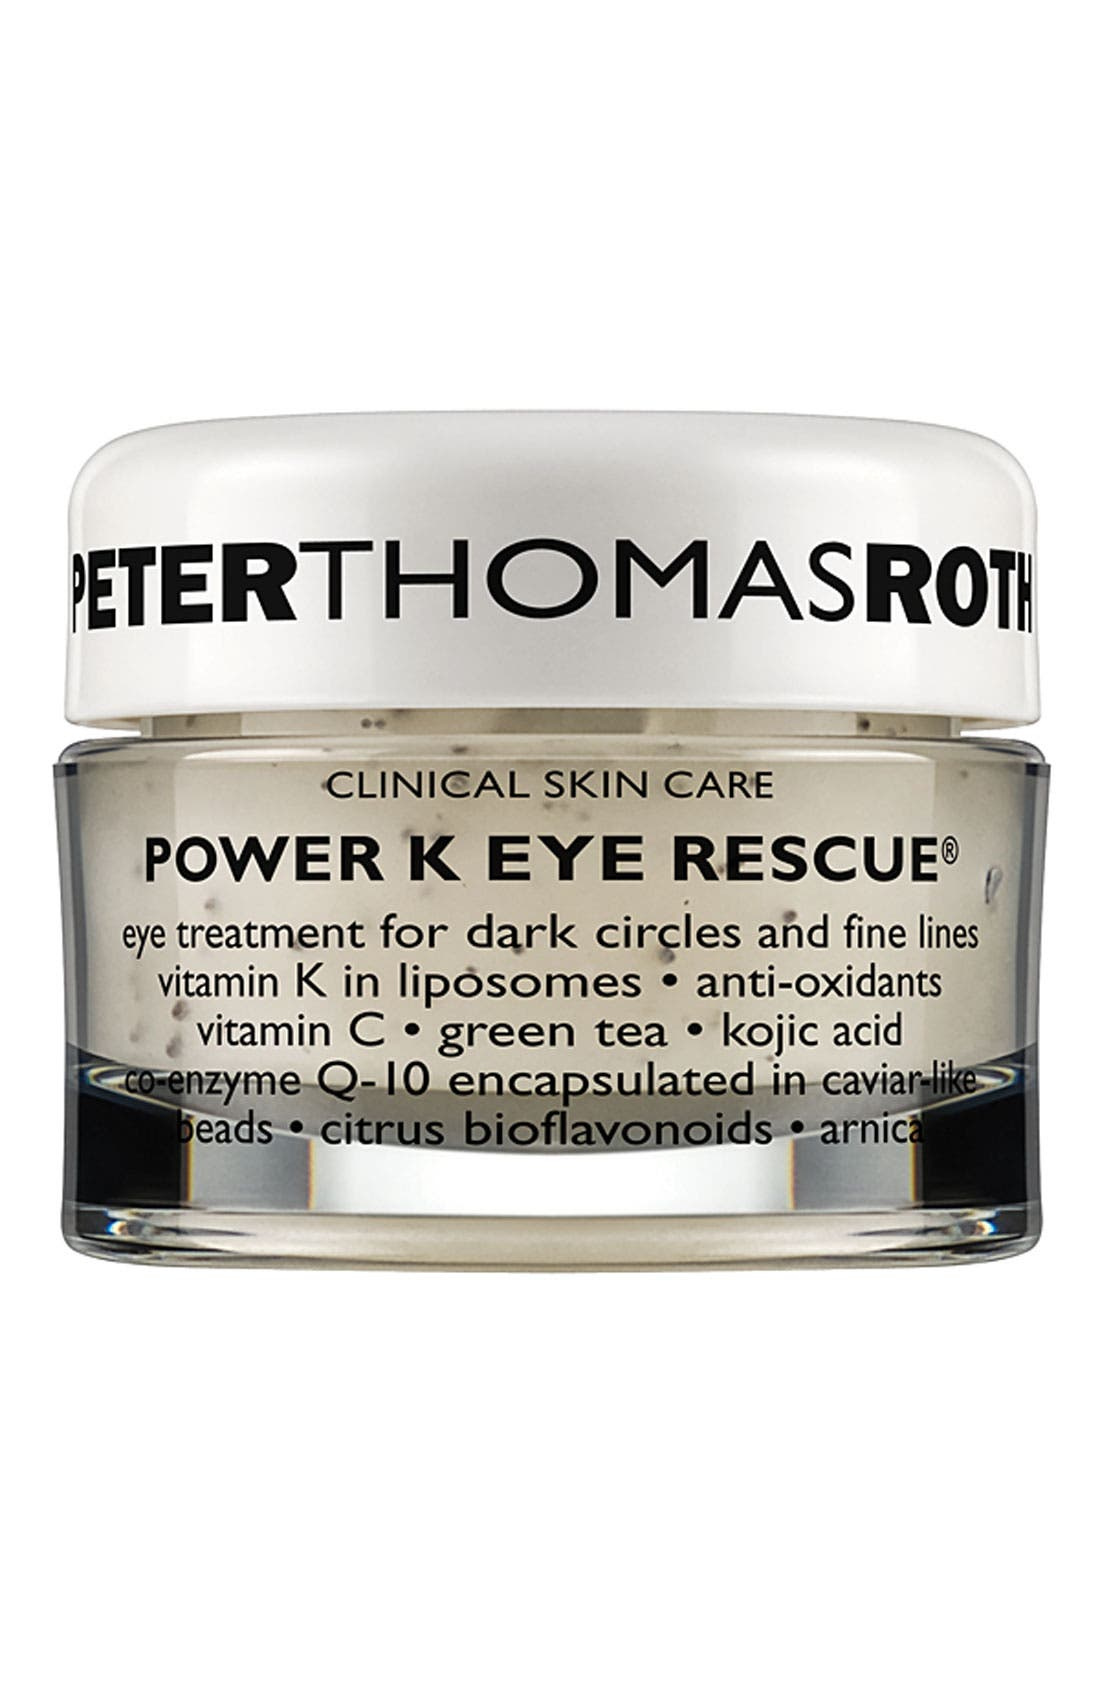 Peter Thomas Roth 'Power K' Eye Rescue®